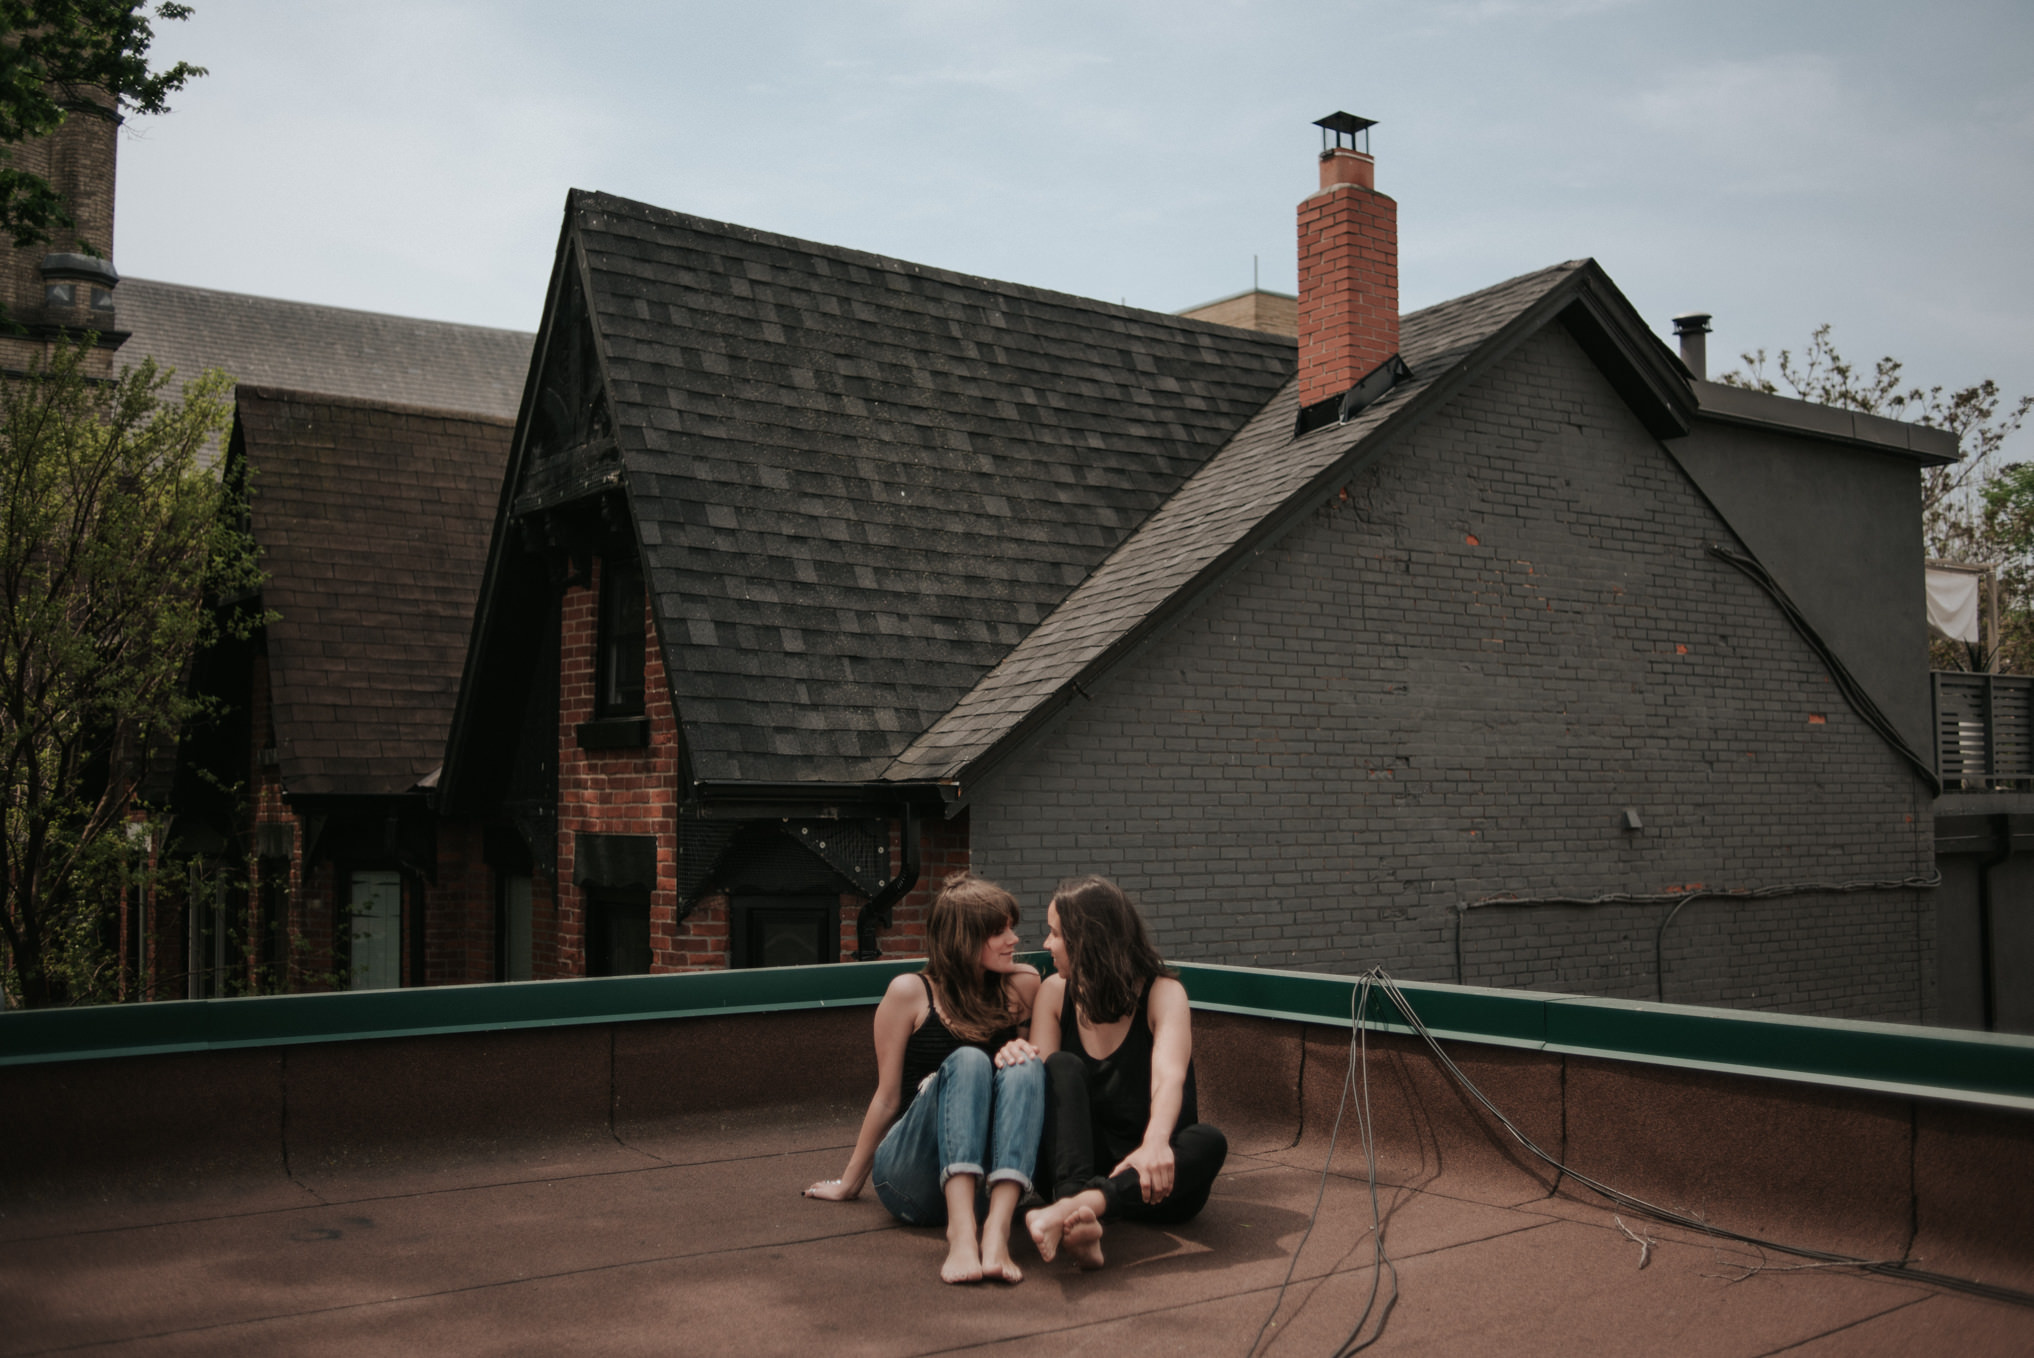 An intimate rooftop femme engagement shoot by Daring Wanderer // www.daringwanderer.com